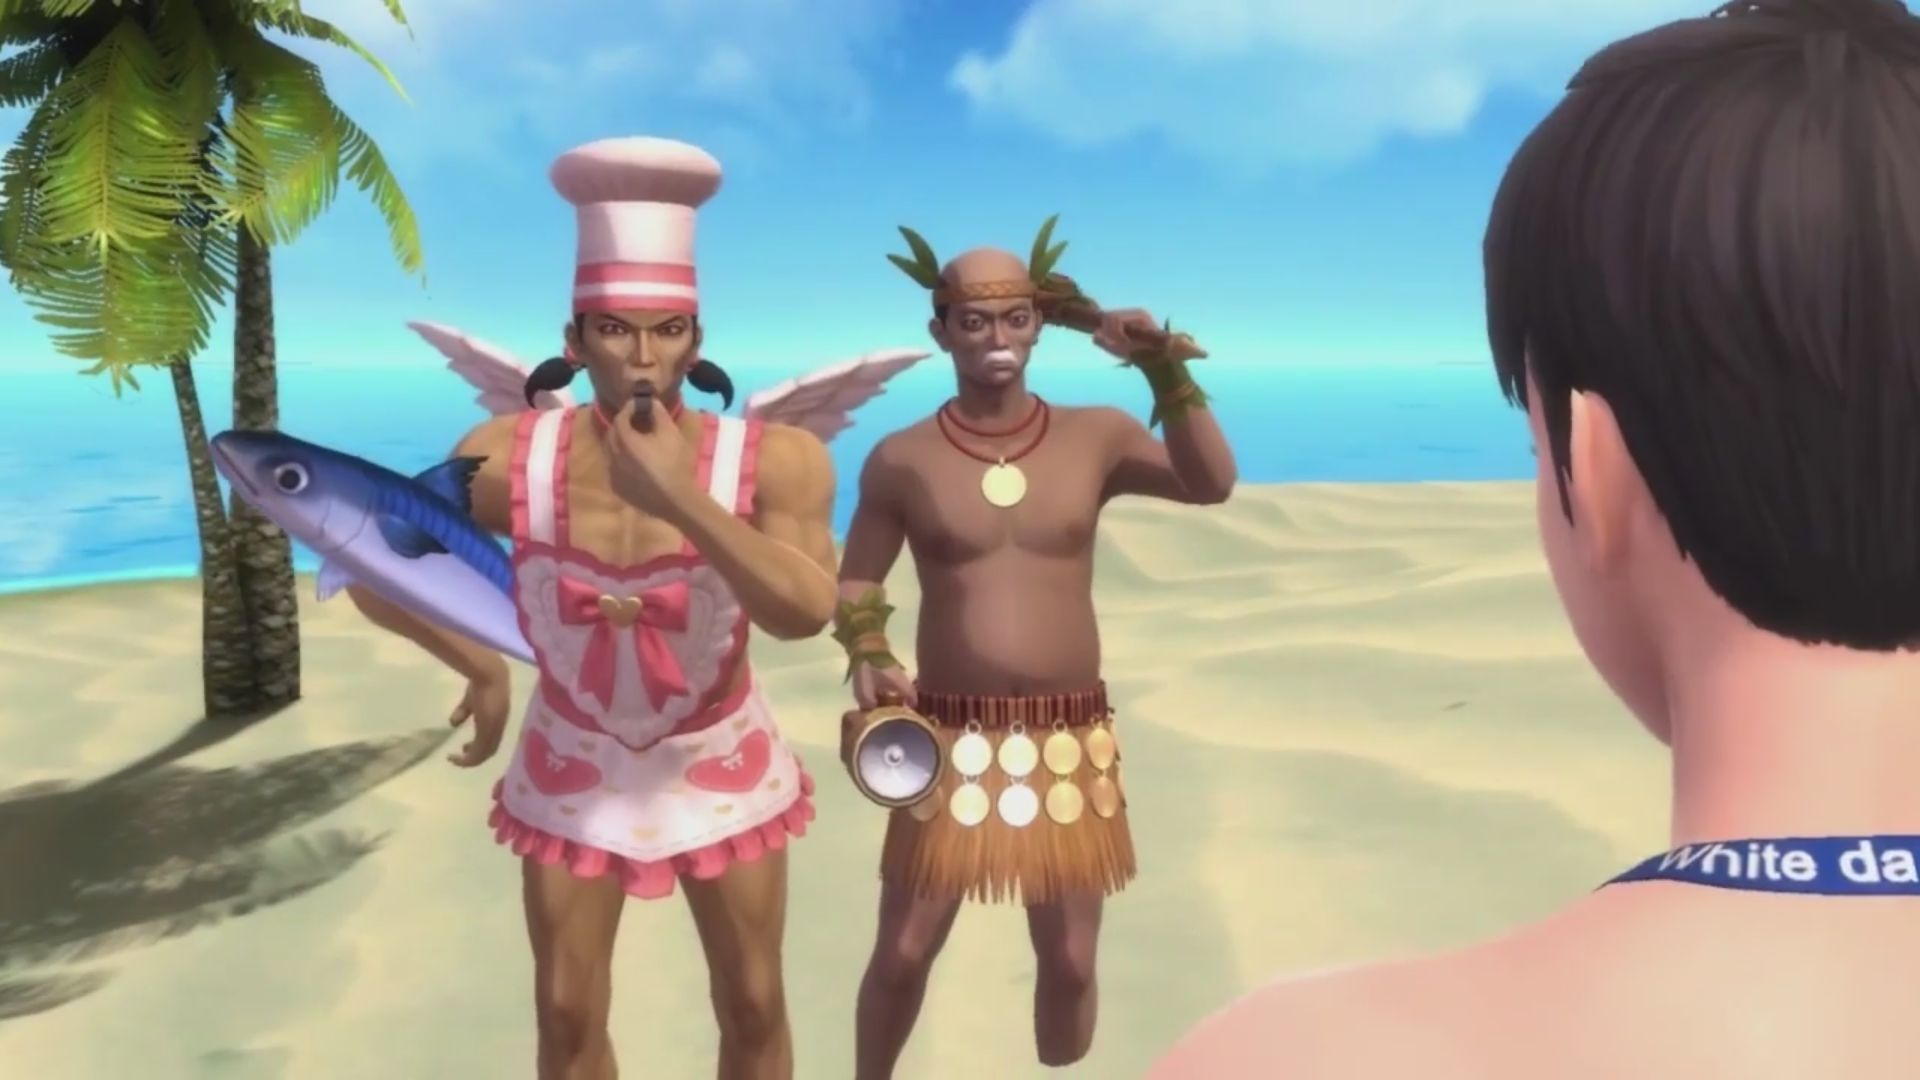 White Day's Beachwear trailer is completely ridiculous and not at all related to the game screenshot